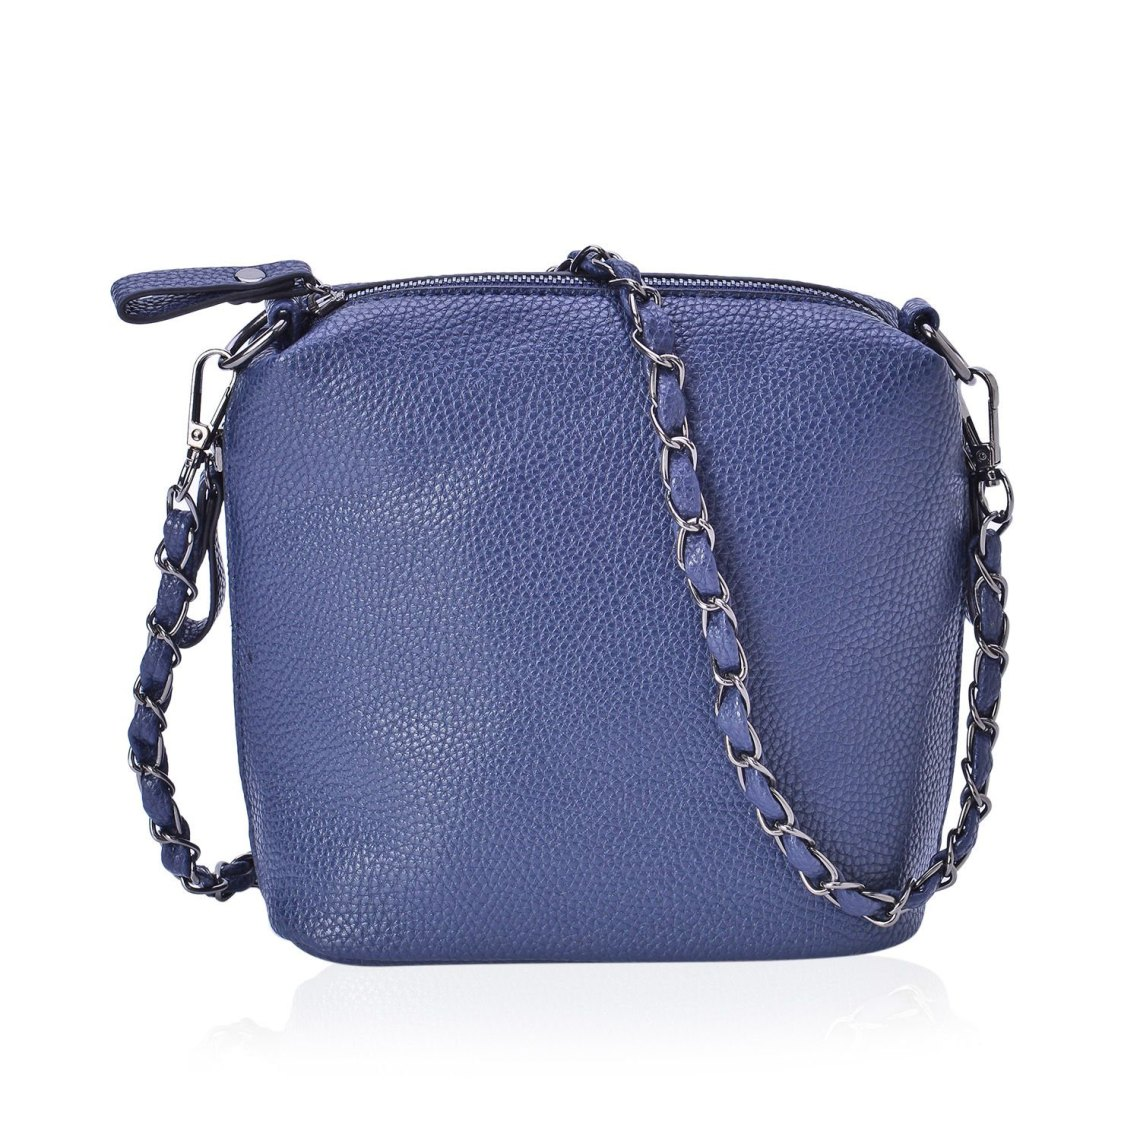 J Francis - Blue Faux Leather Crossbody Bag